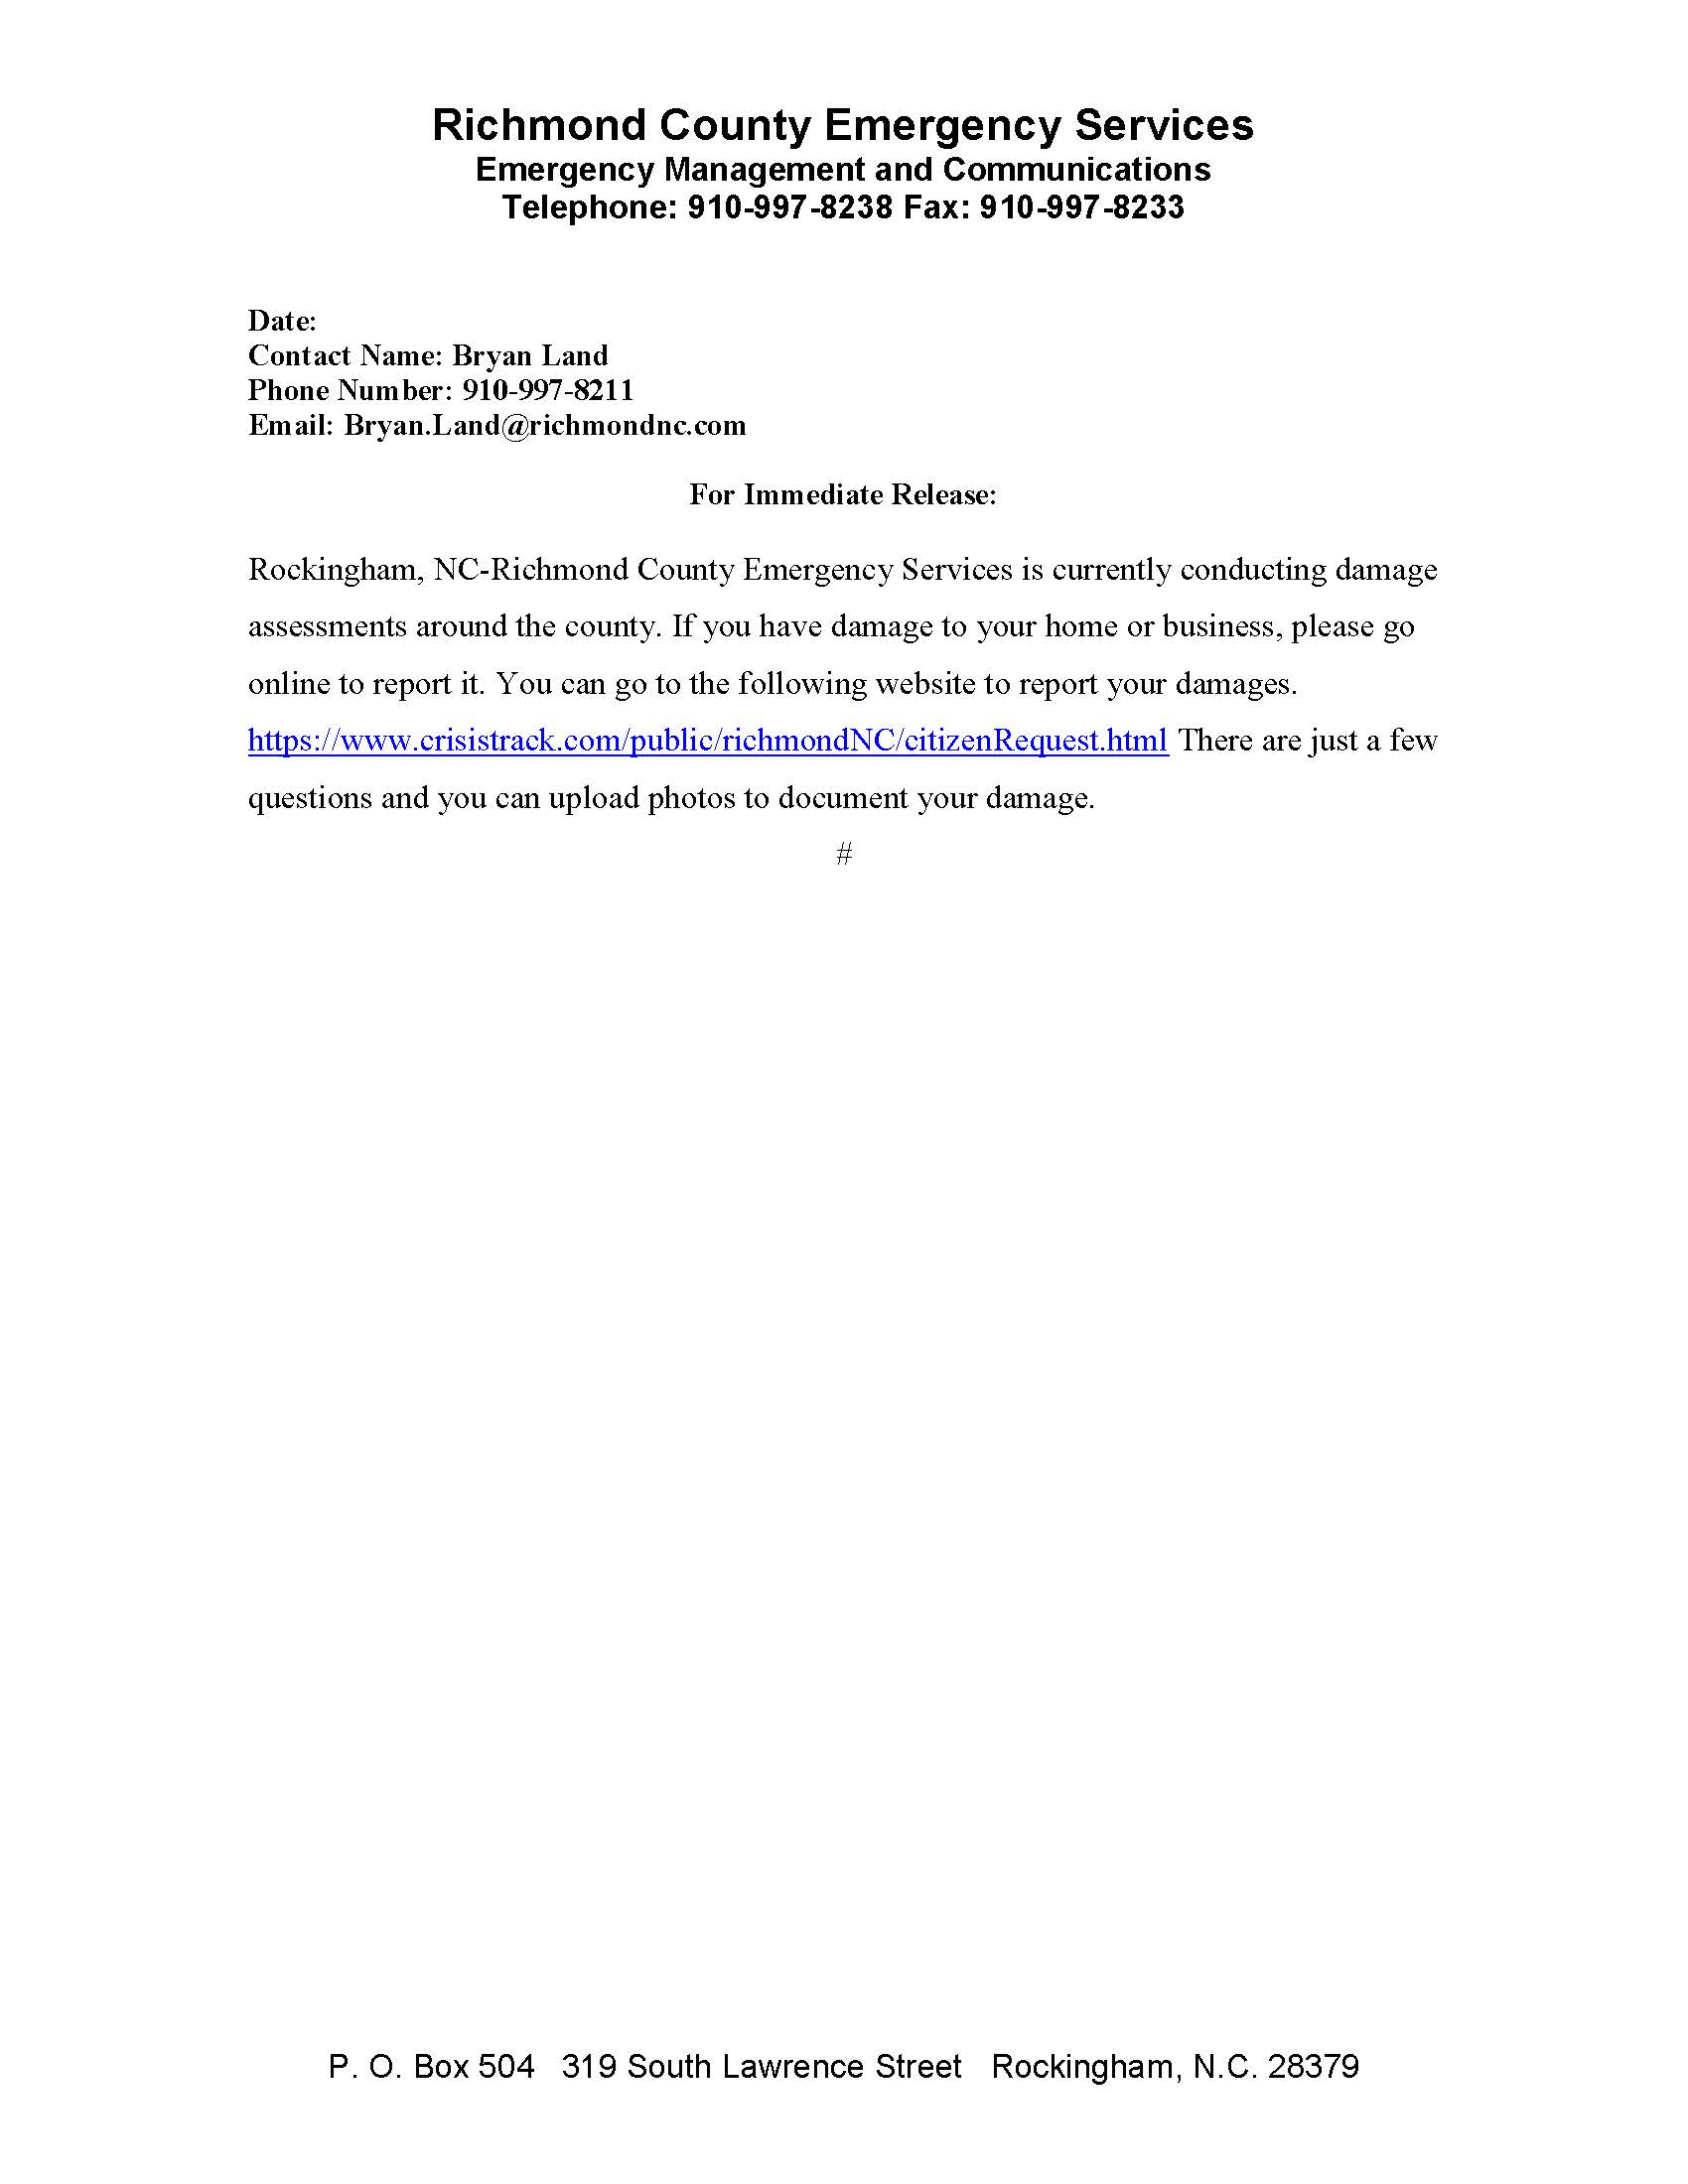 Damage Assessment Press Release